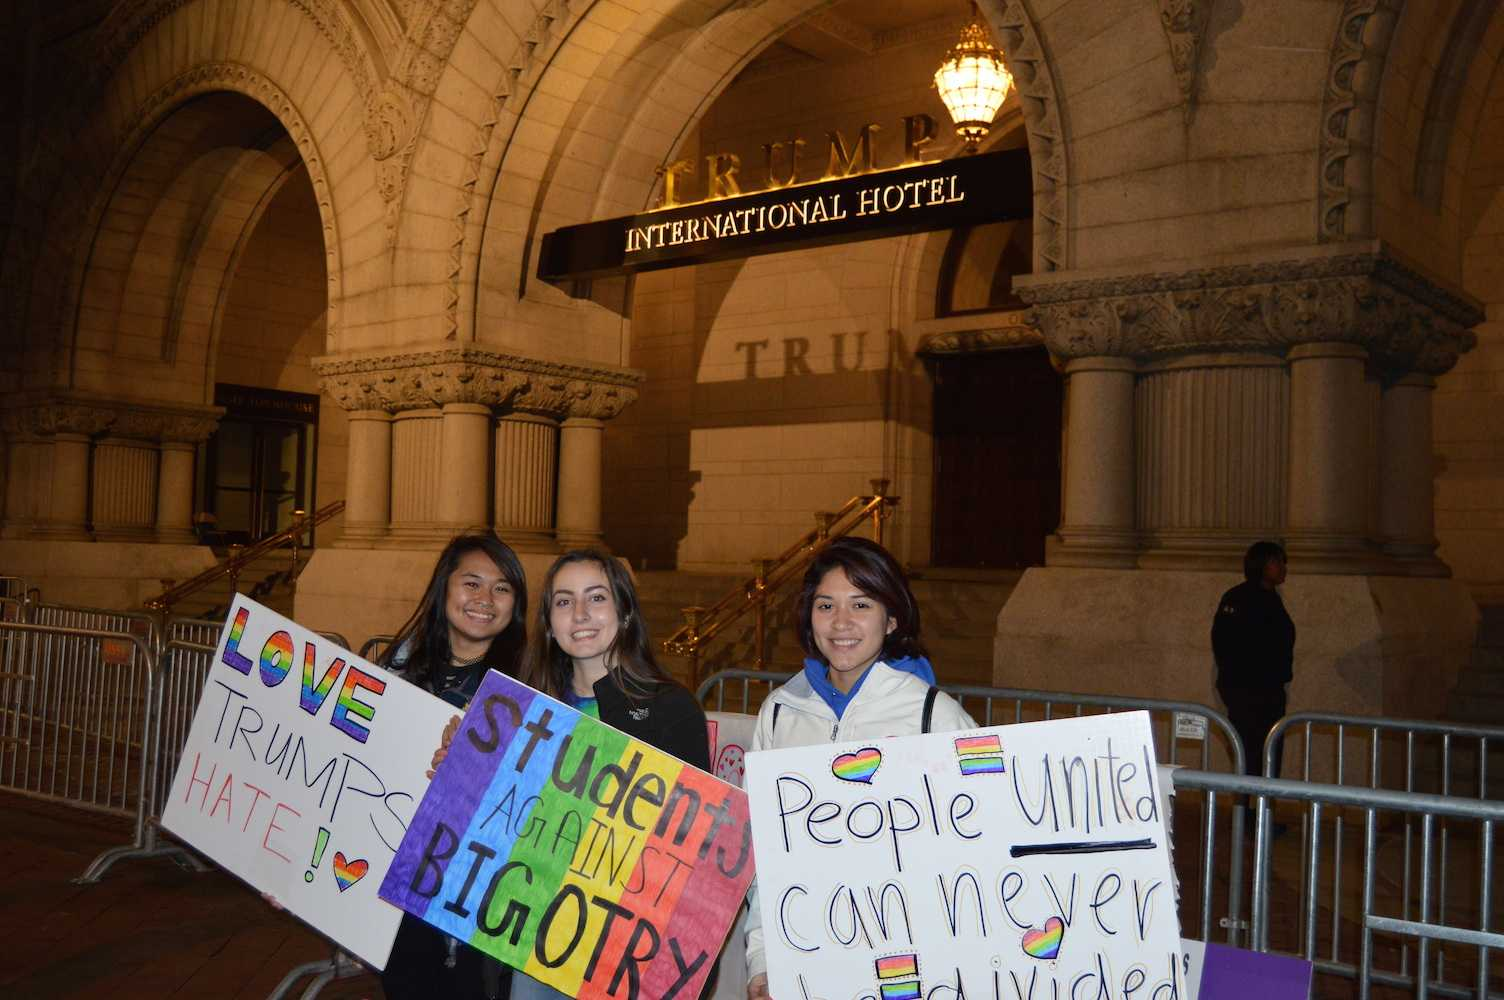 Madison students protest in front of the Trump hotel.